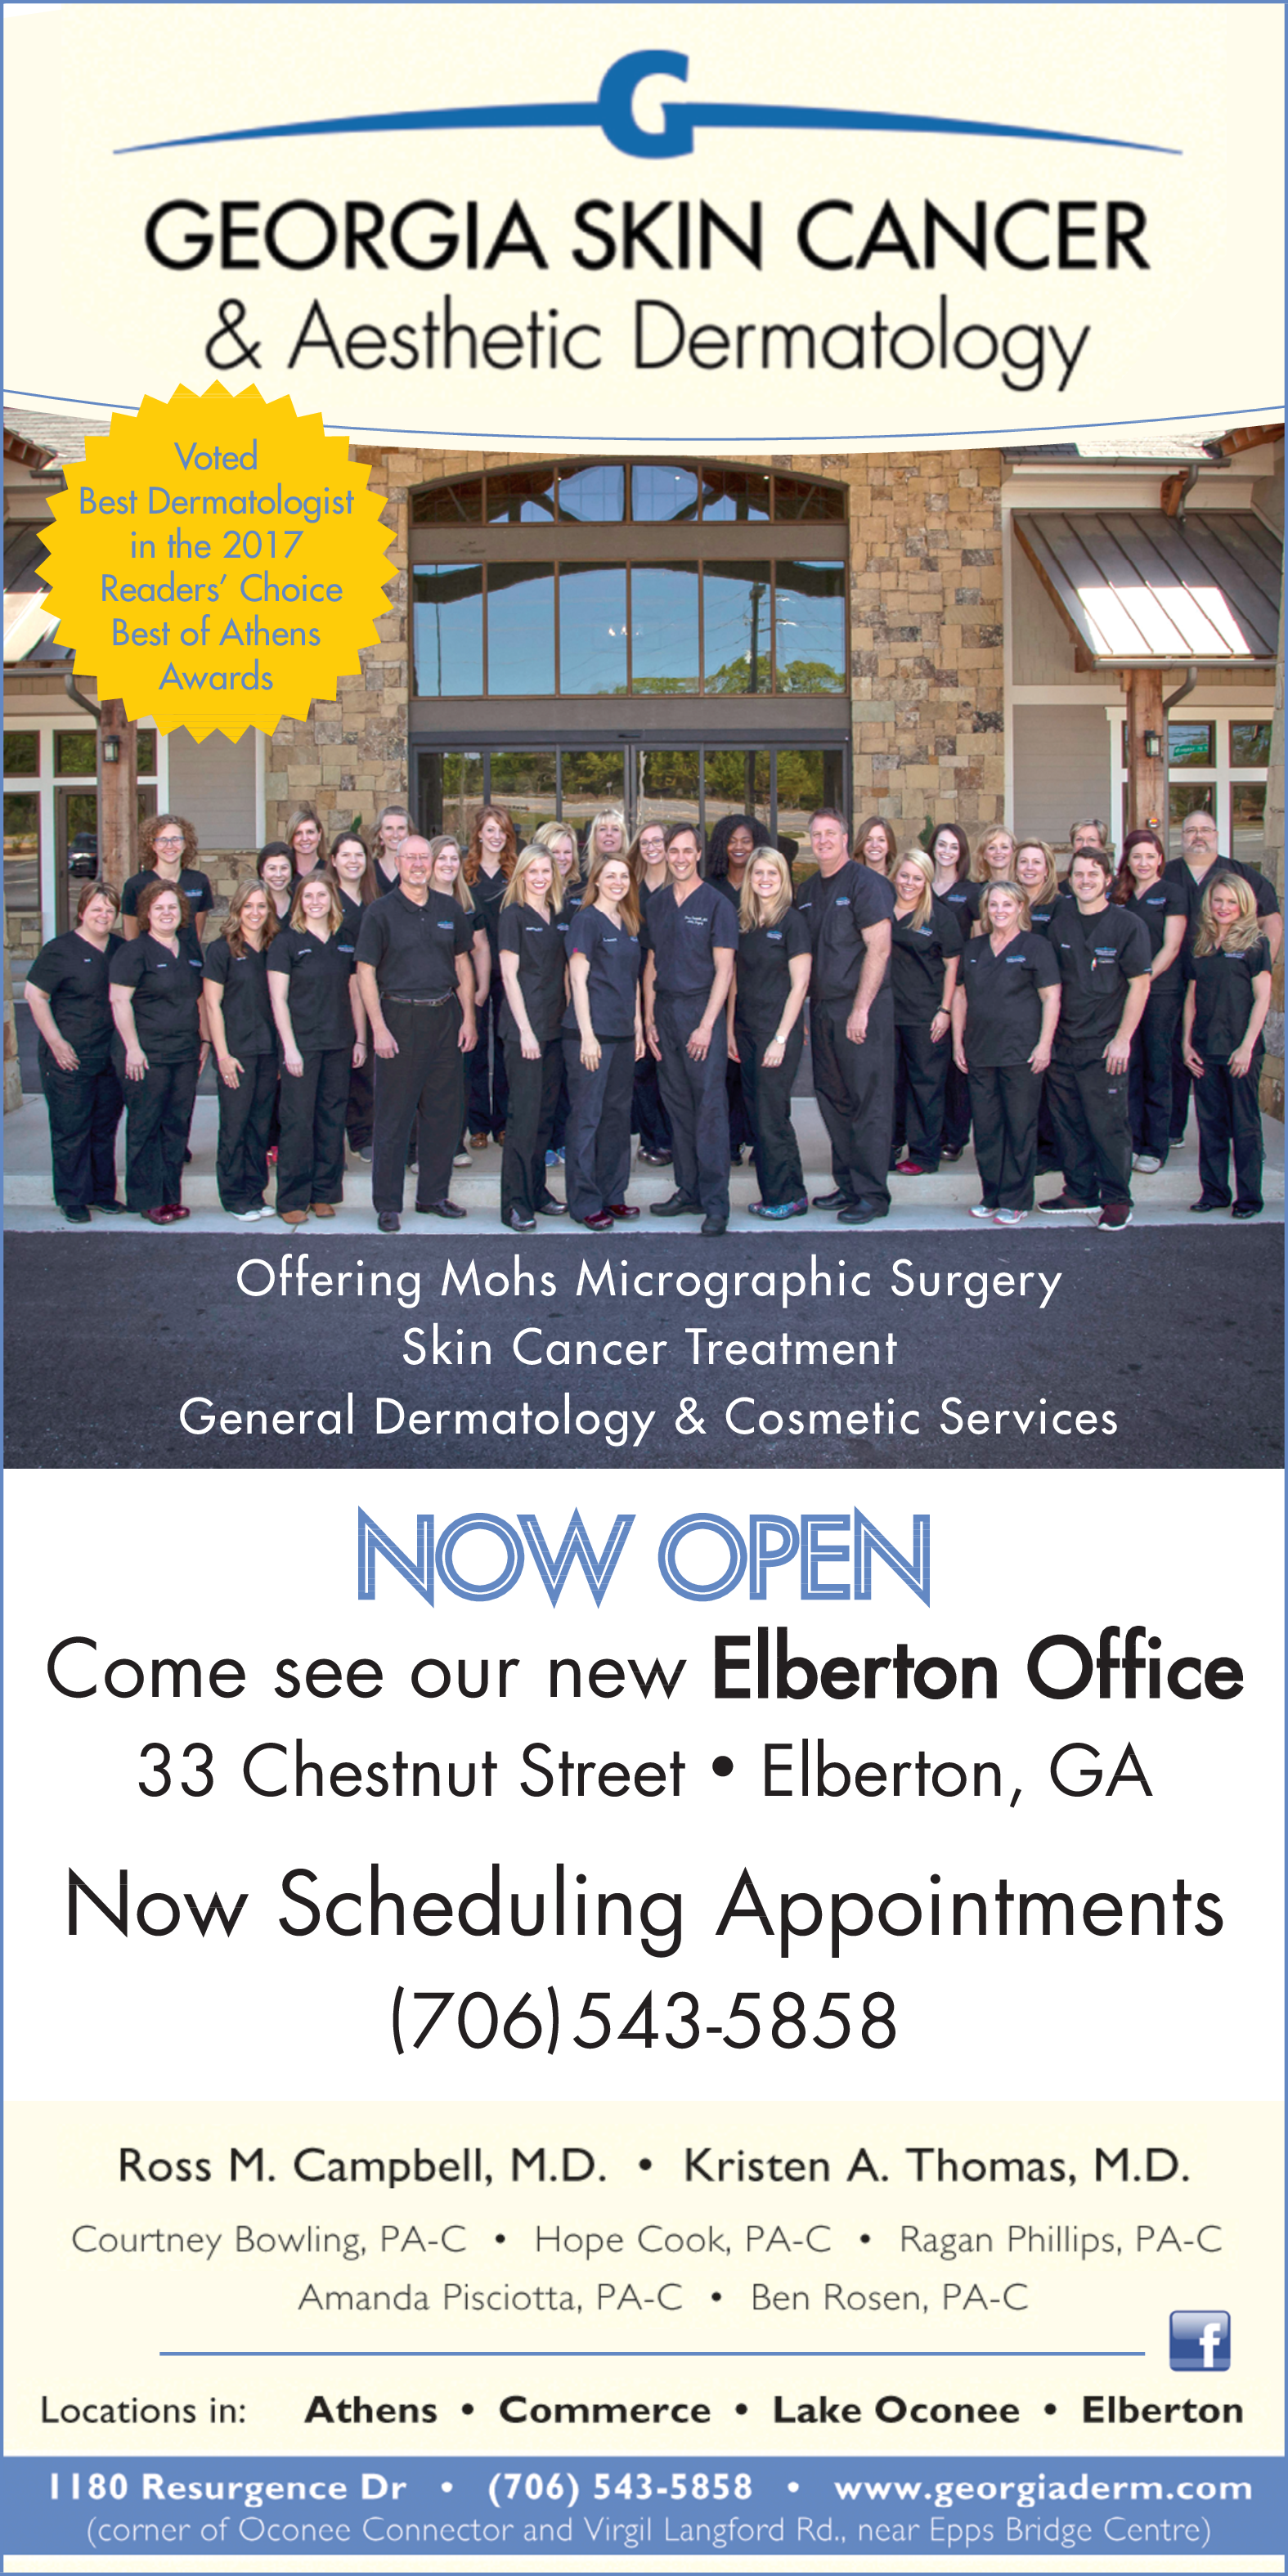 Offering Mohs Micrographic Surgery And Skin Cancer Treatment By Georgia Skin Cancer Aesthetic Dermatology In 33 Chestnut Street Elberton Georgia